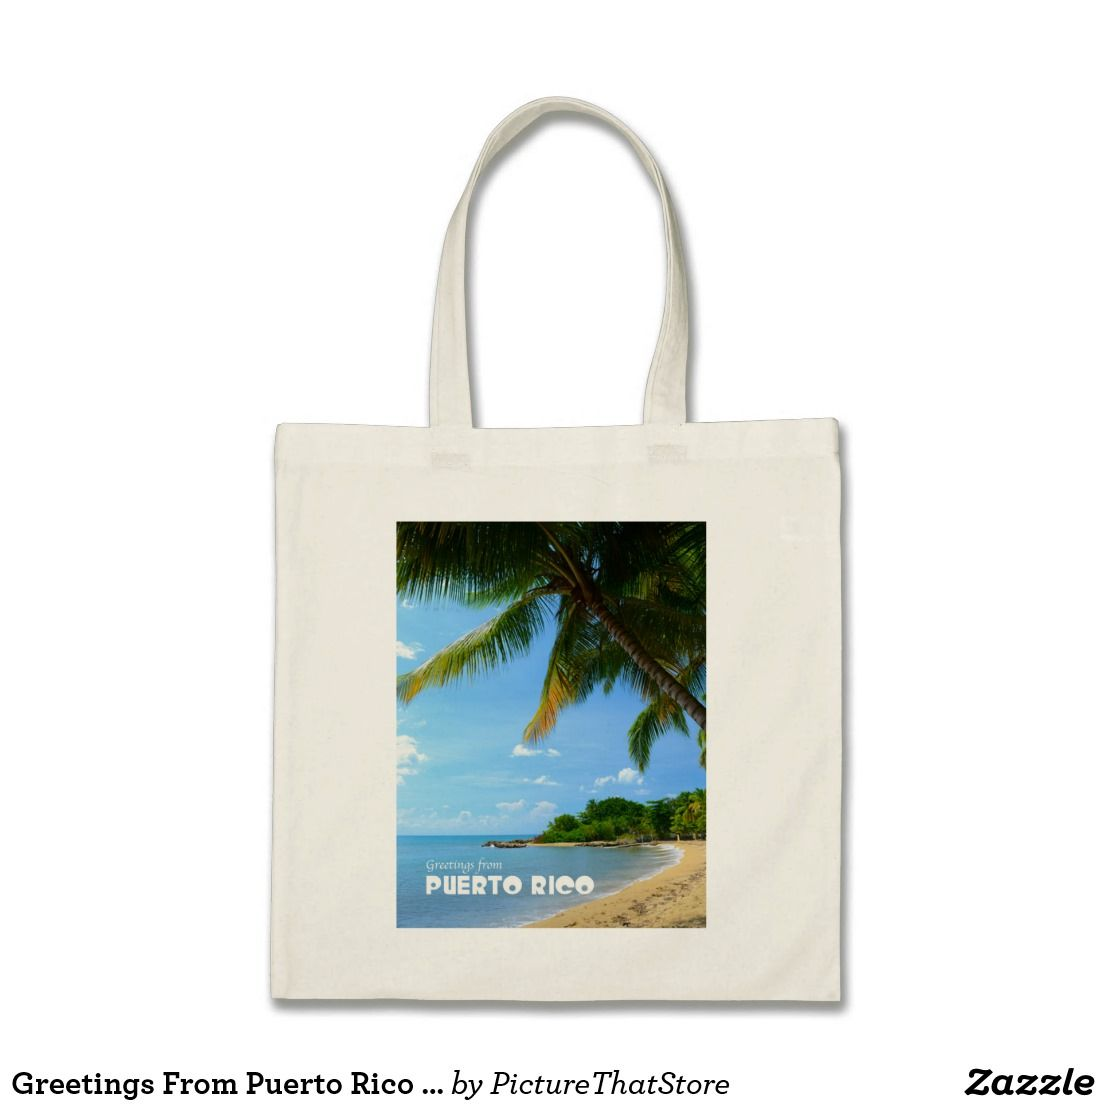 Greetings from puerto rico tote bag puerto rico gifts from greetings from puerto rico tote bag m4hsunfo